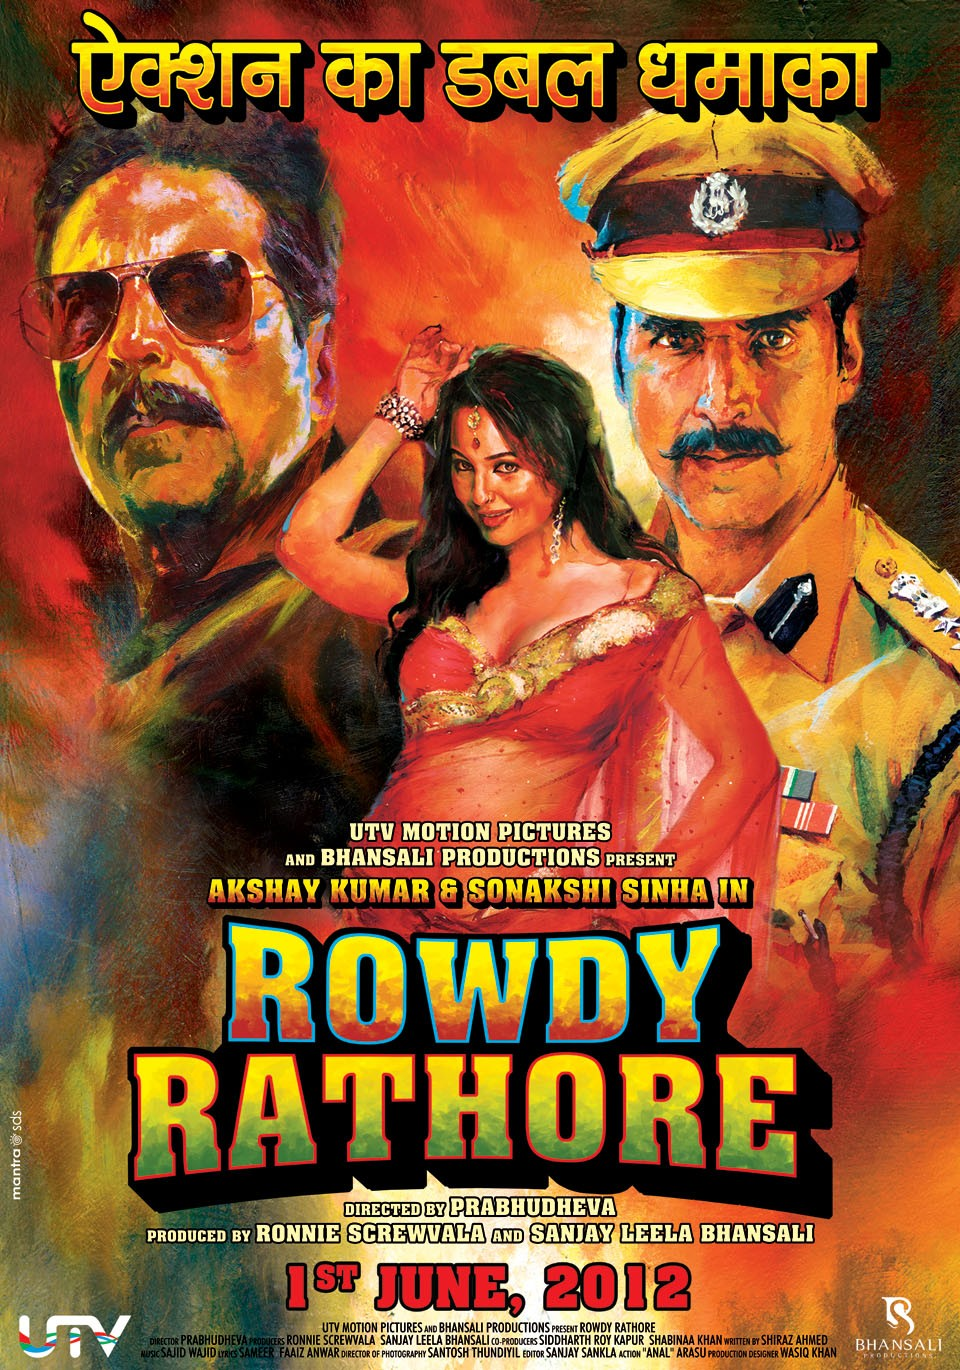 Kids Wallpaper Hd Rowdy Rathore 6 Of 7 Extra Large Movie Poster Image